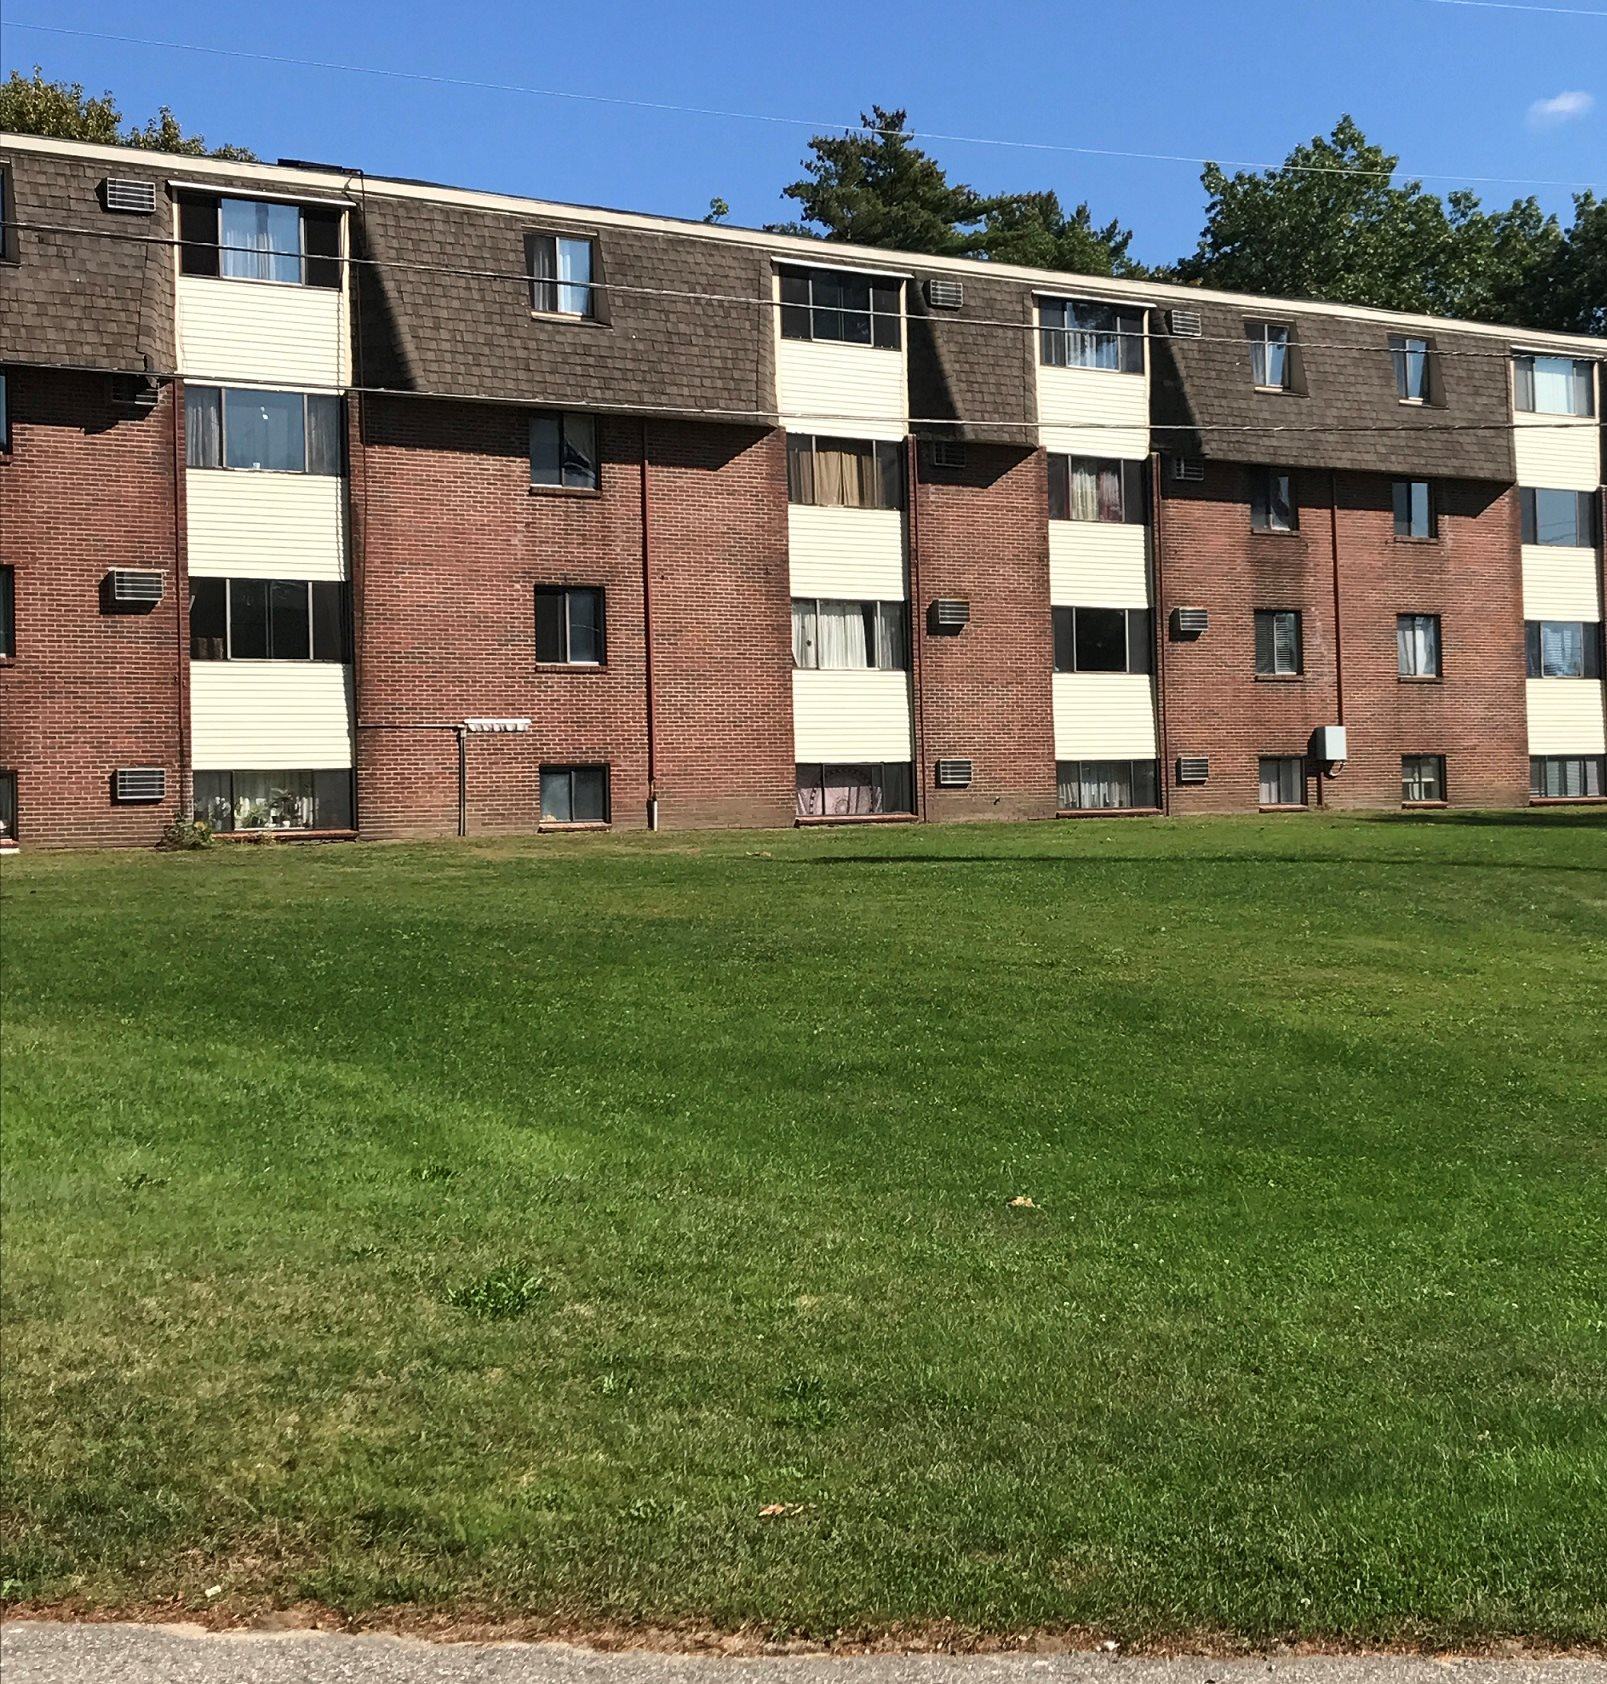 Image of Rockingham Village Apartments